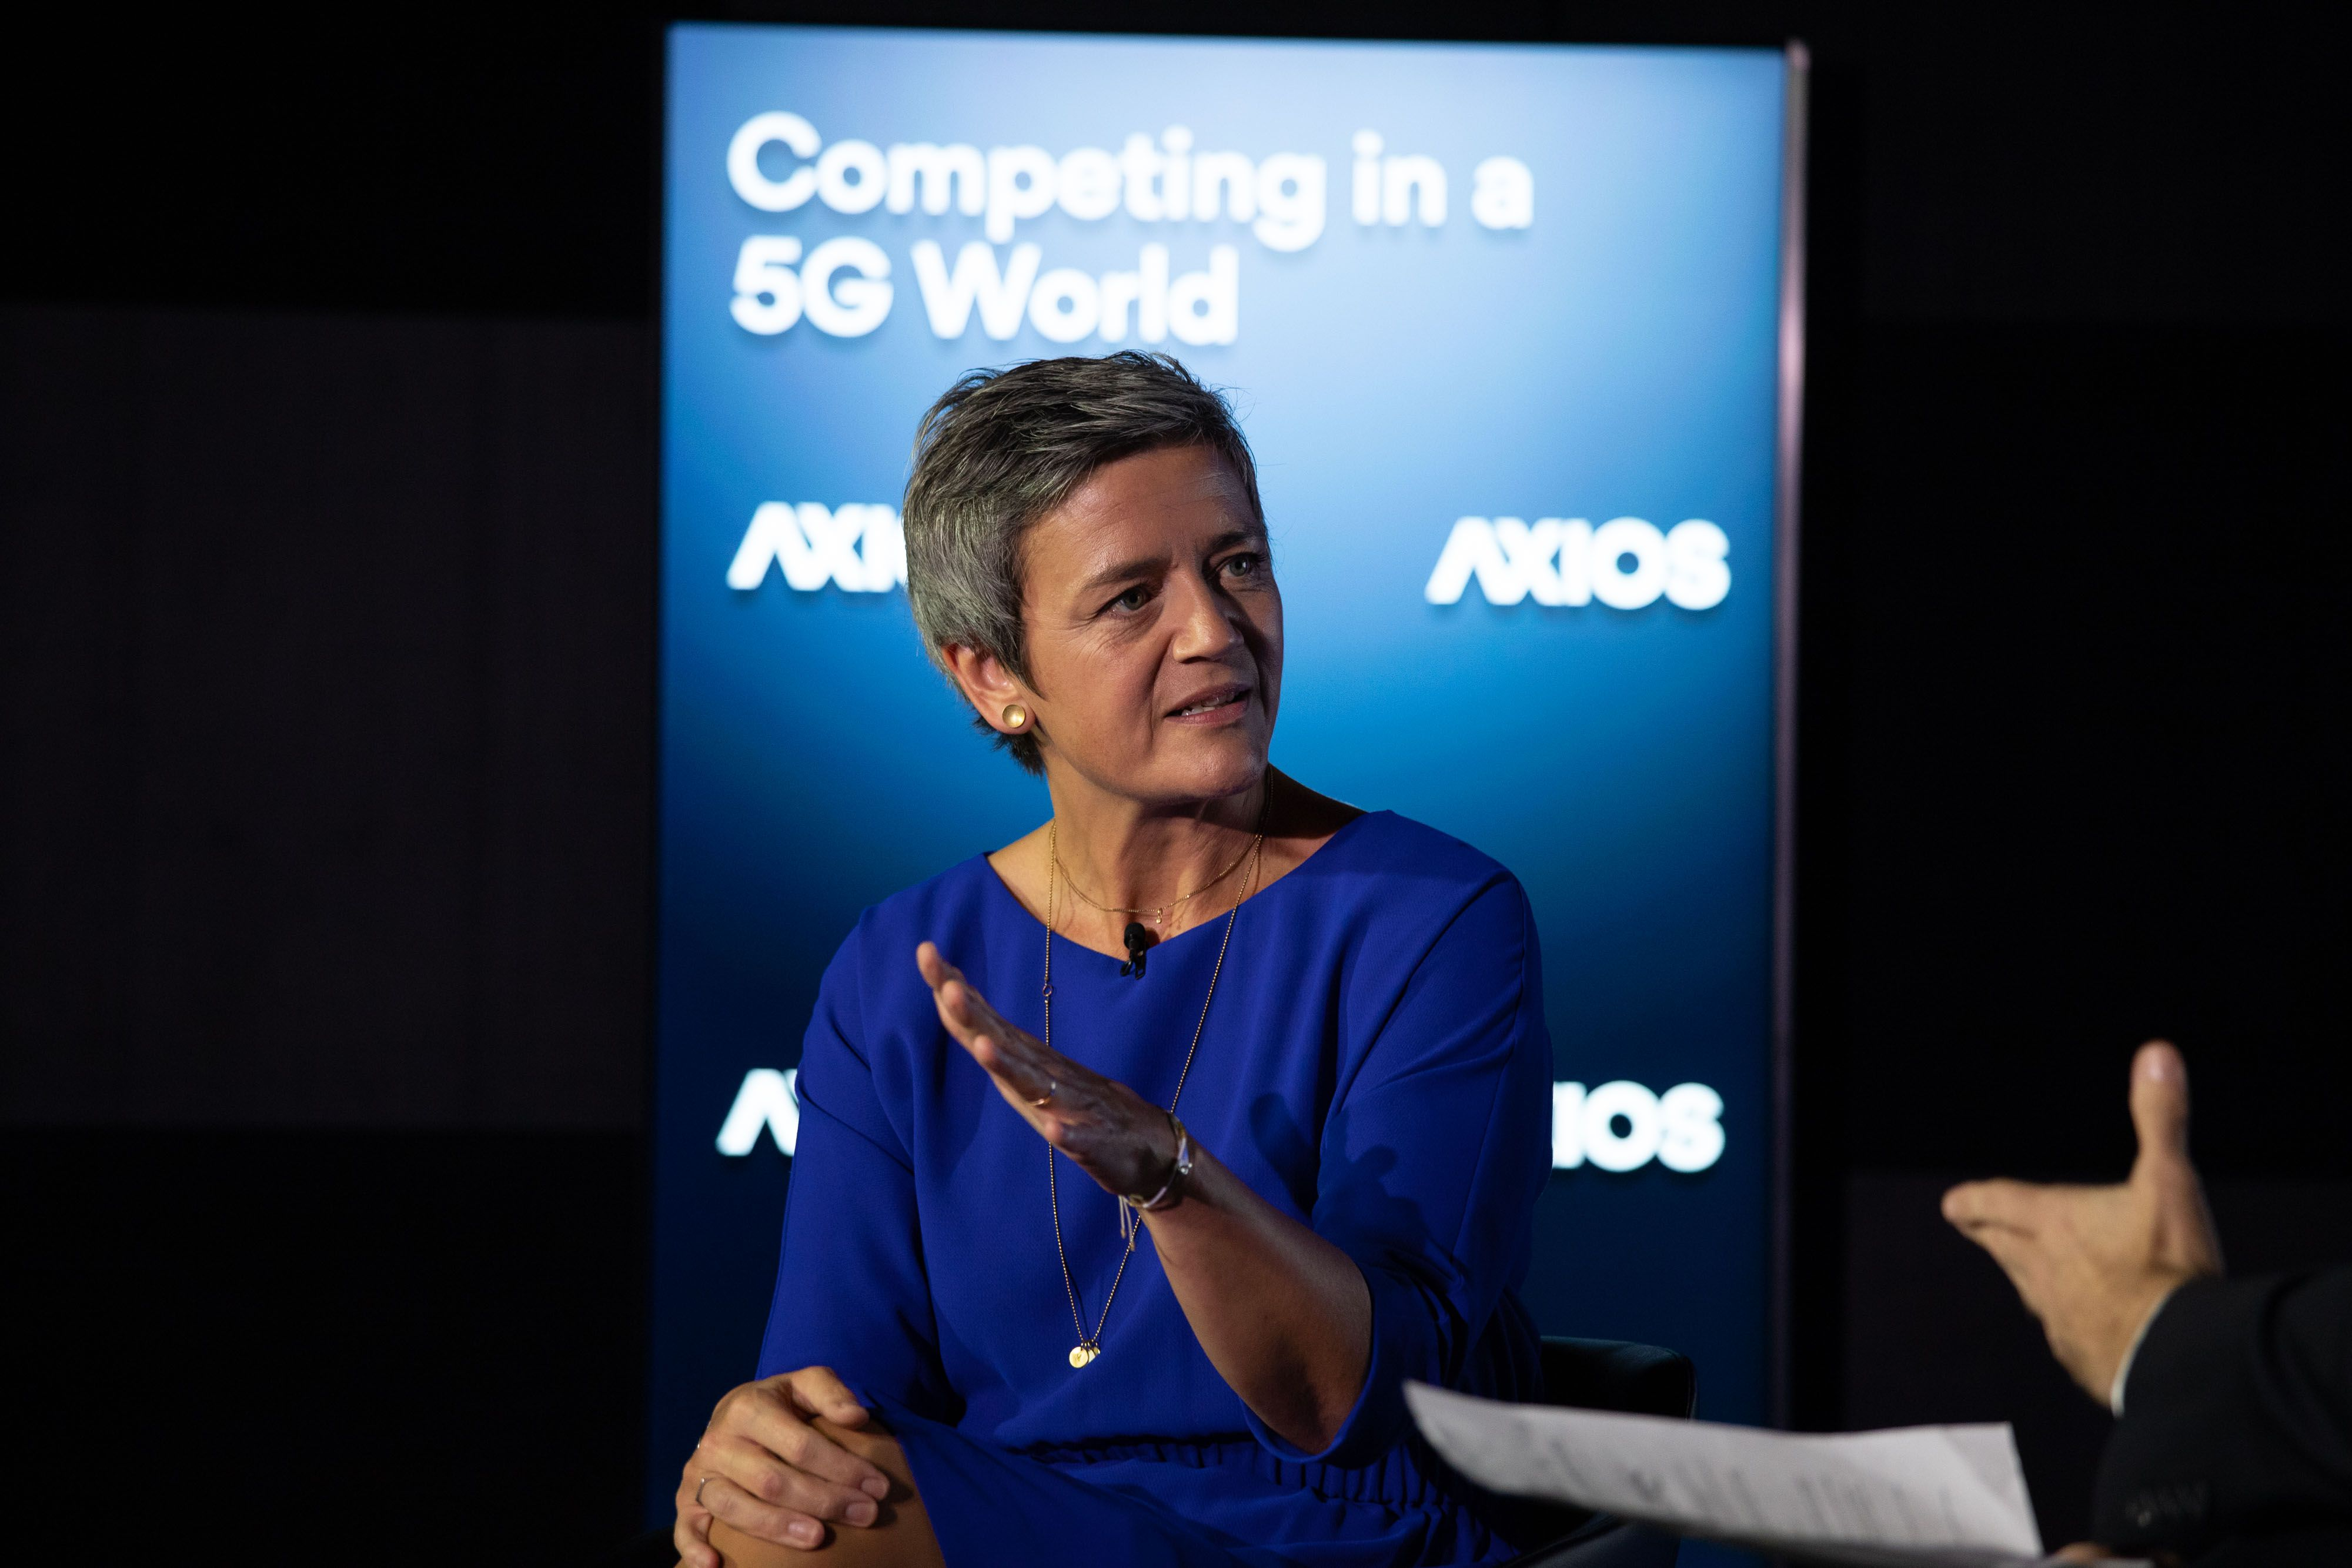 Commissioner Margrethe Vestager speaking on the Axios stage